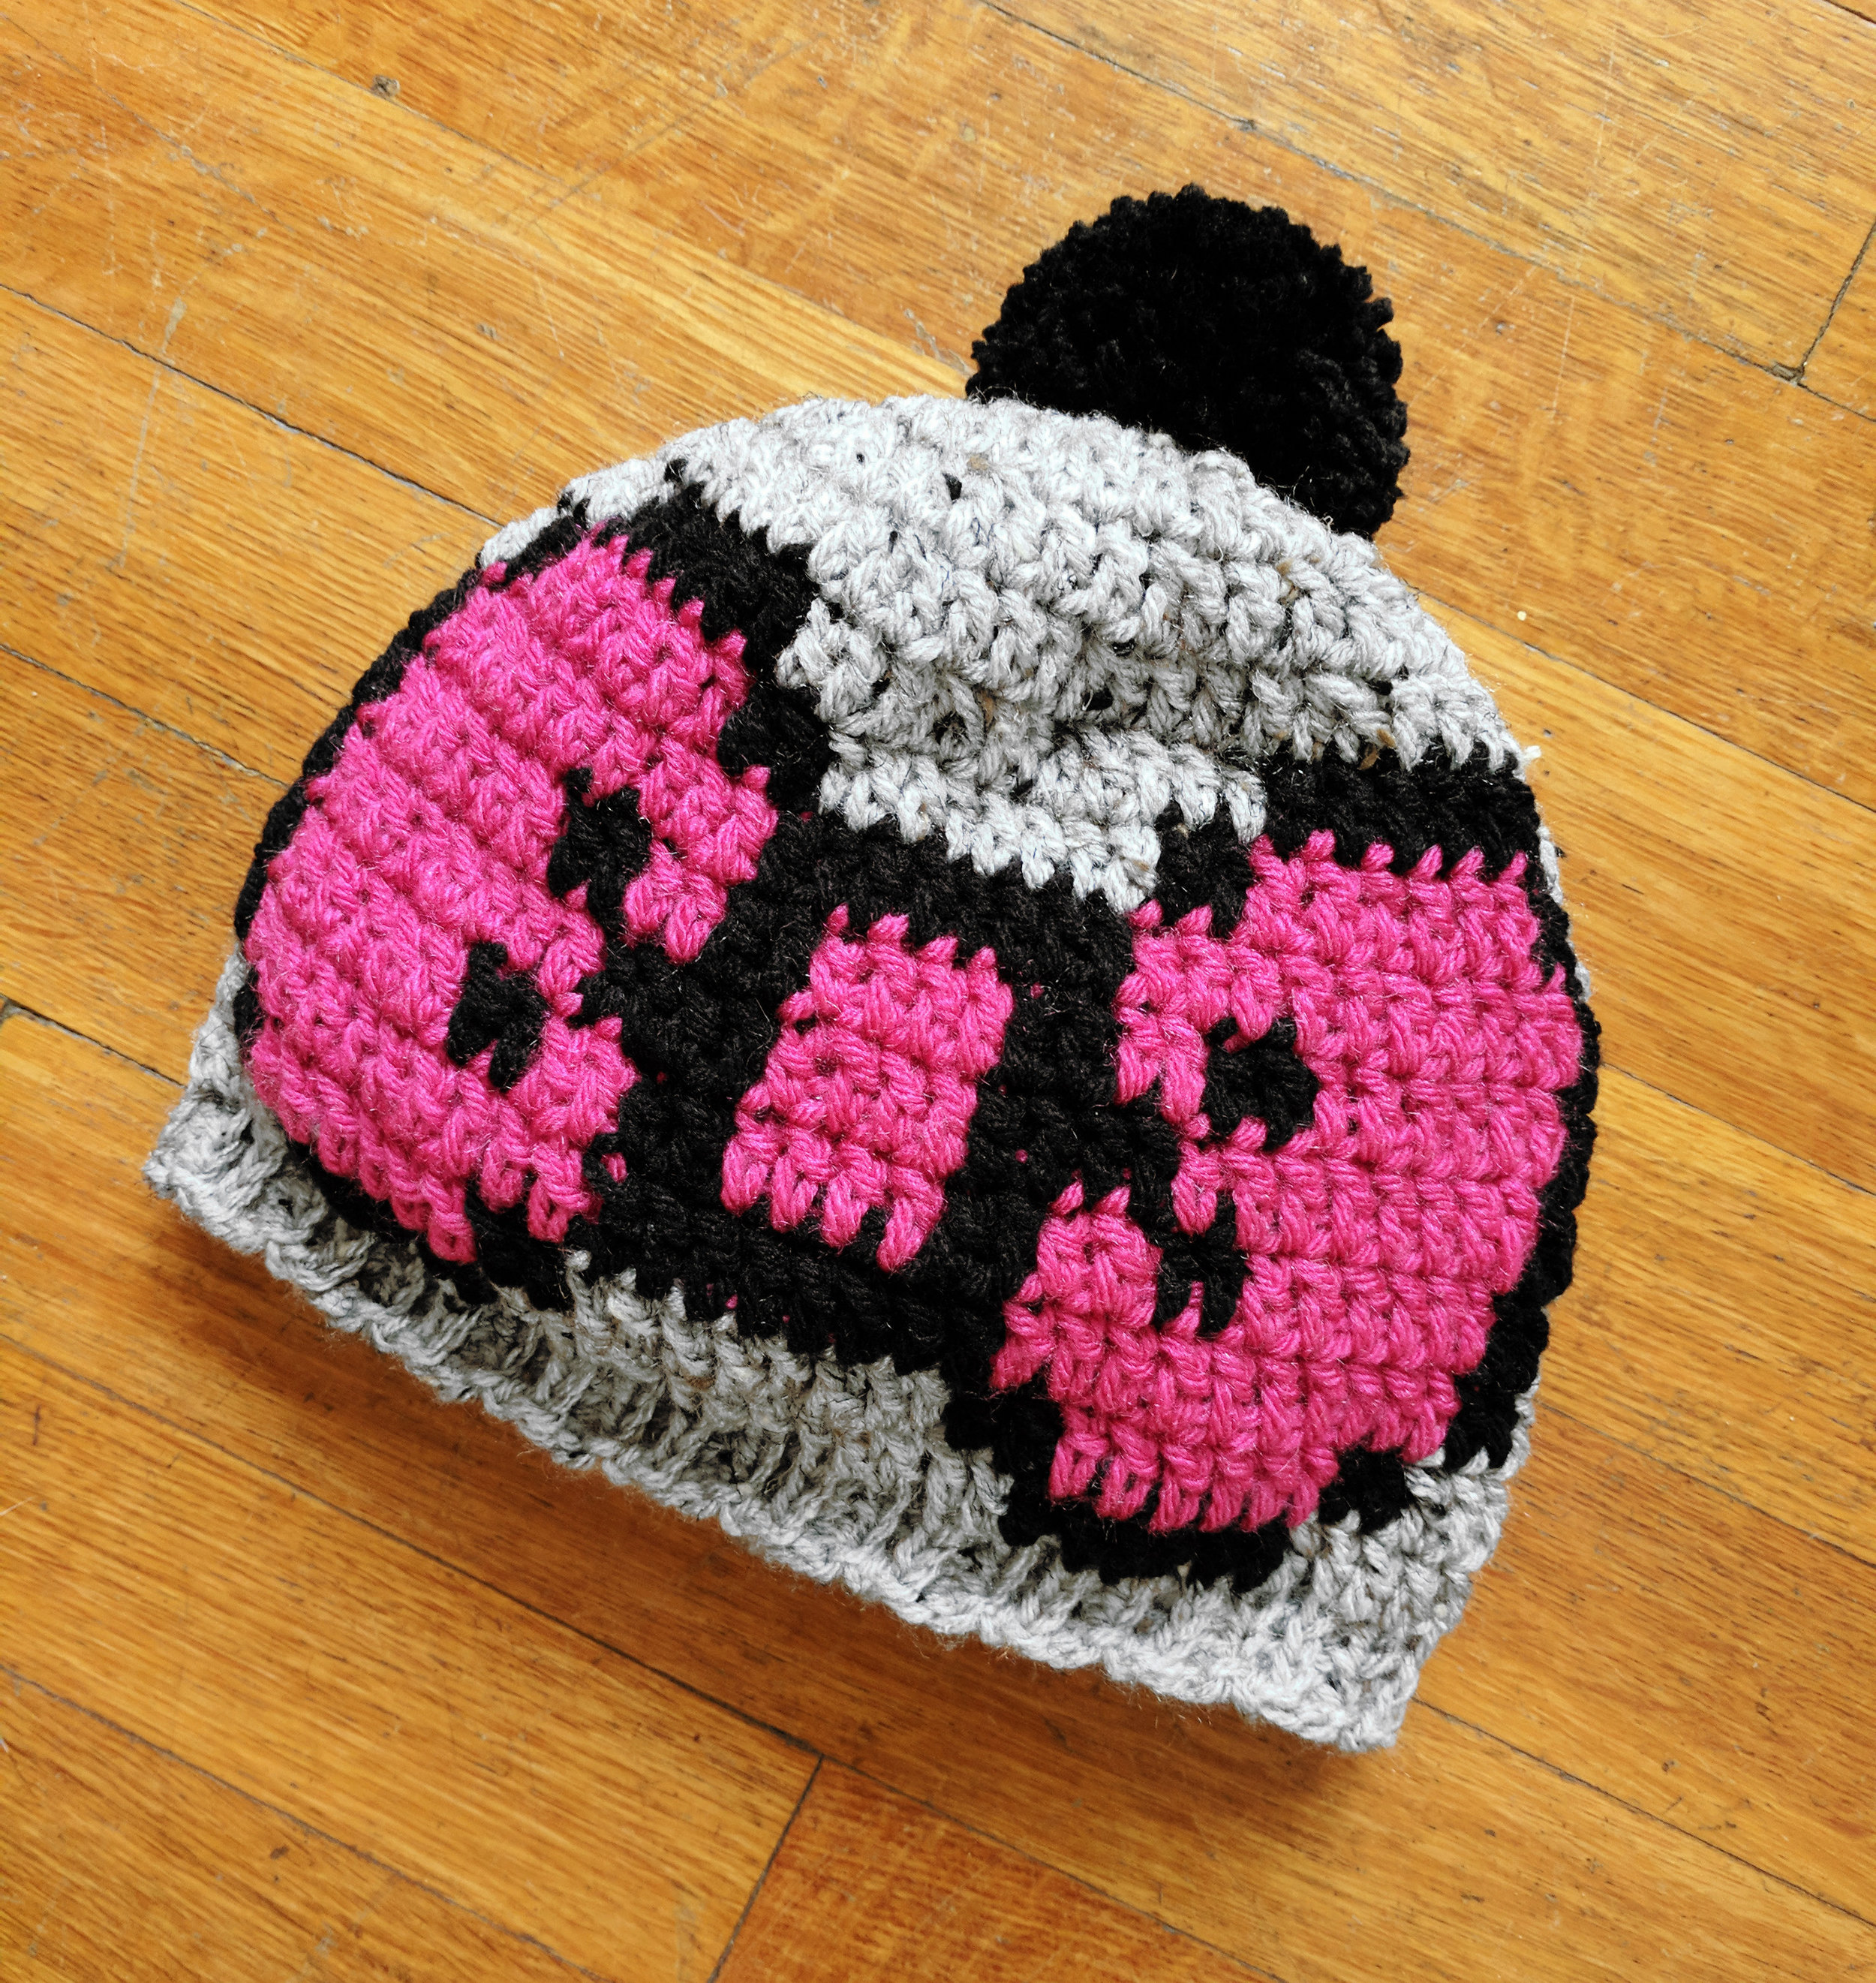 Join my email list and you'll get this exclusive crochet pattern, a pixel bow hat, for free! -